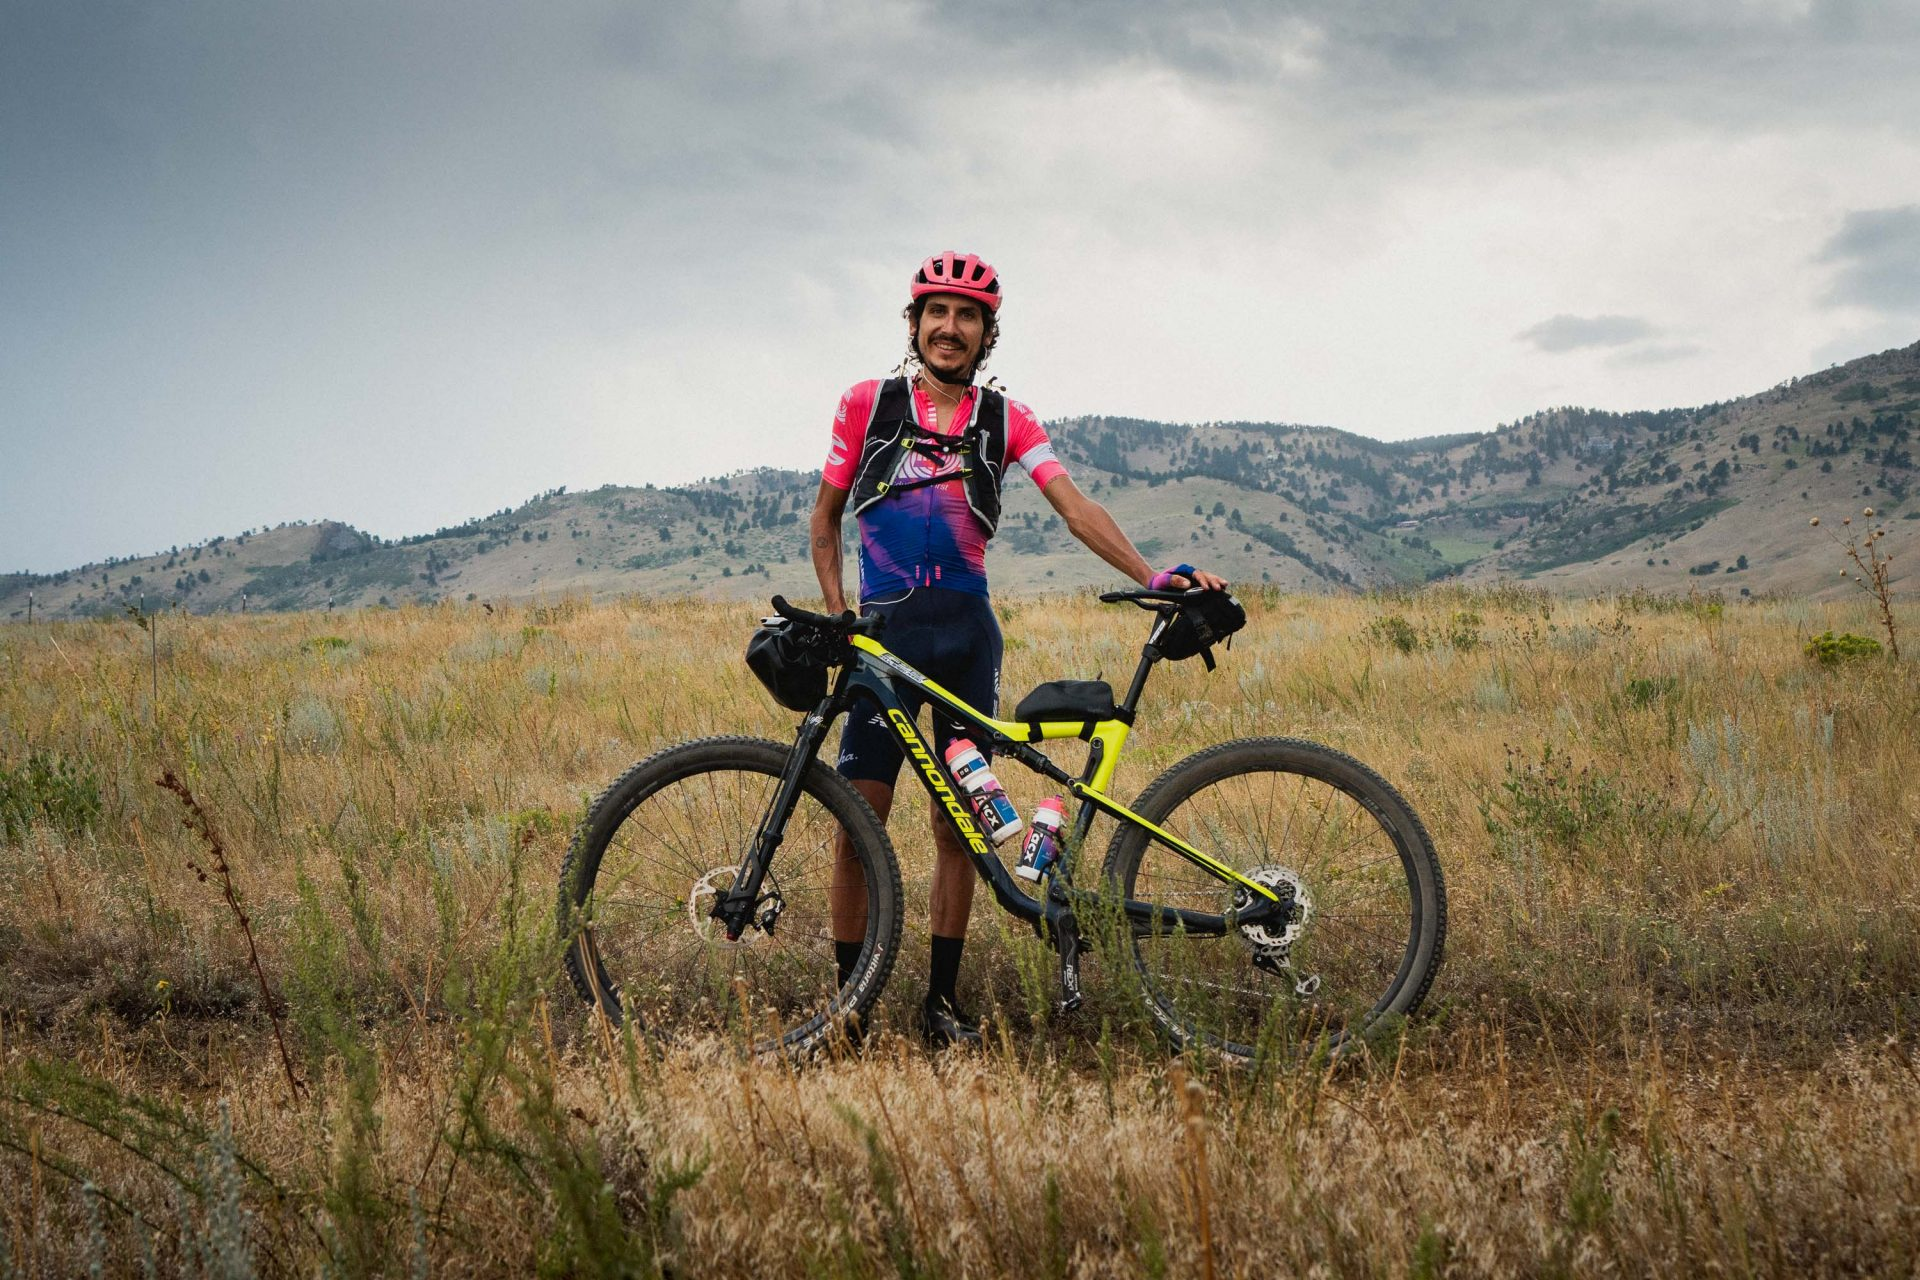 Lachlan Morton Finishes Colorado Trail in Under Four Days 16